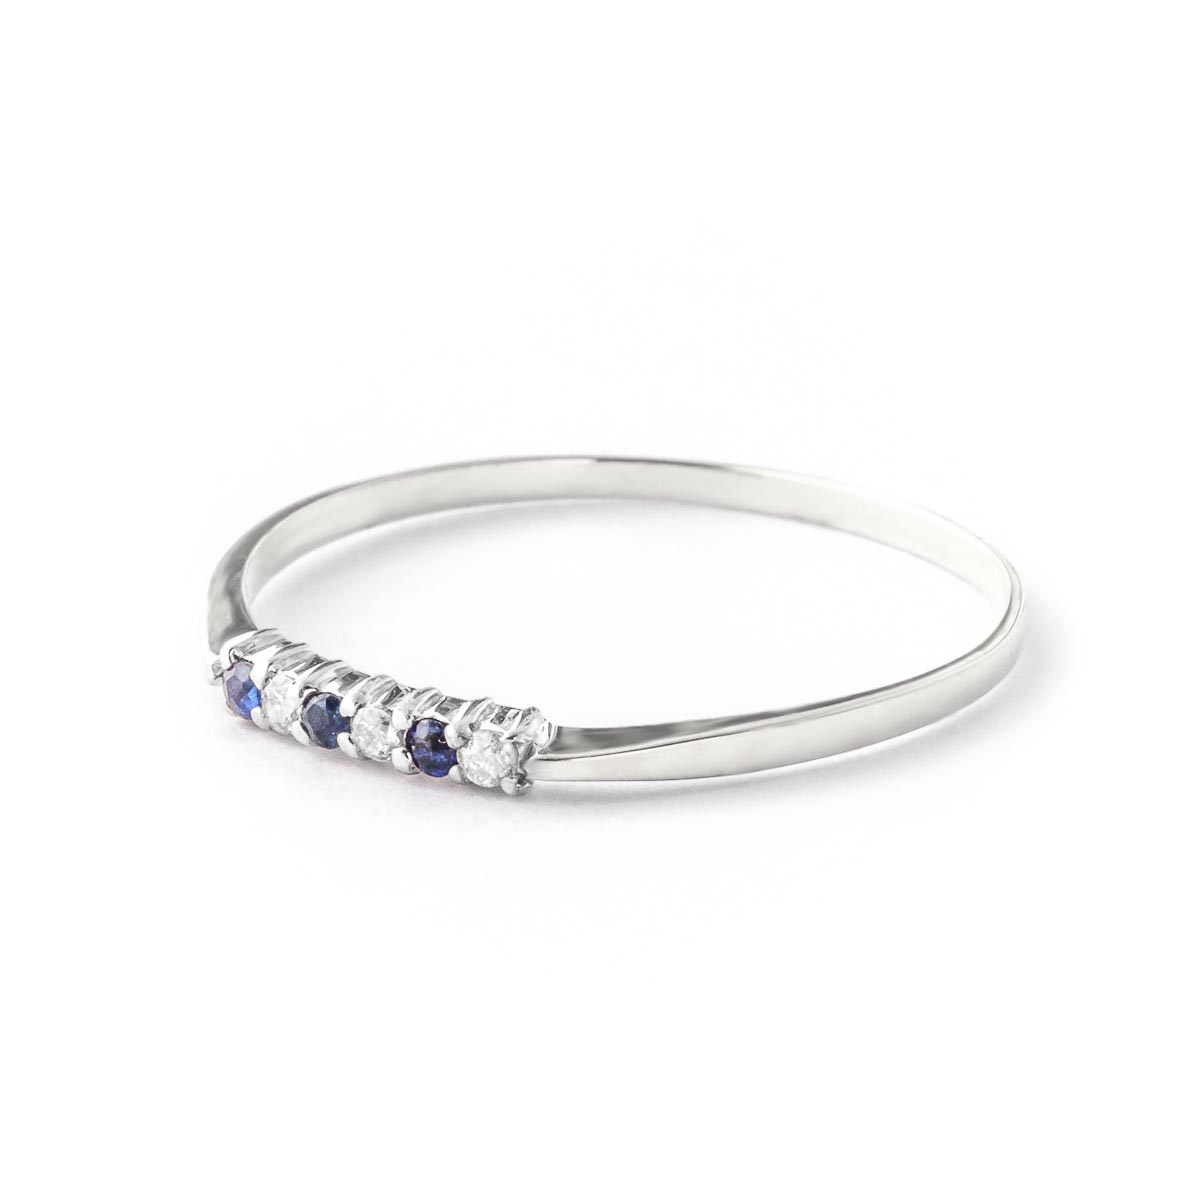 Diamond and Sapphire Ring in 9ct White Gold